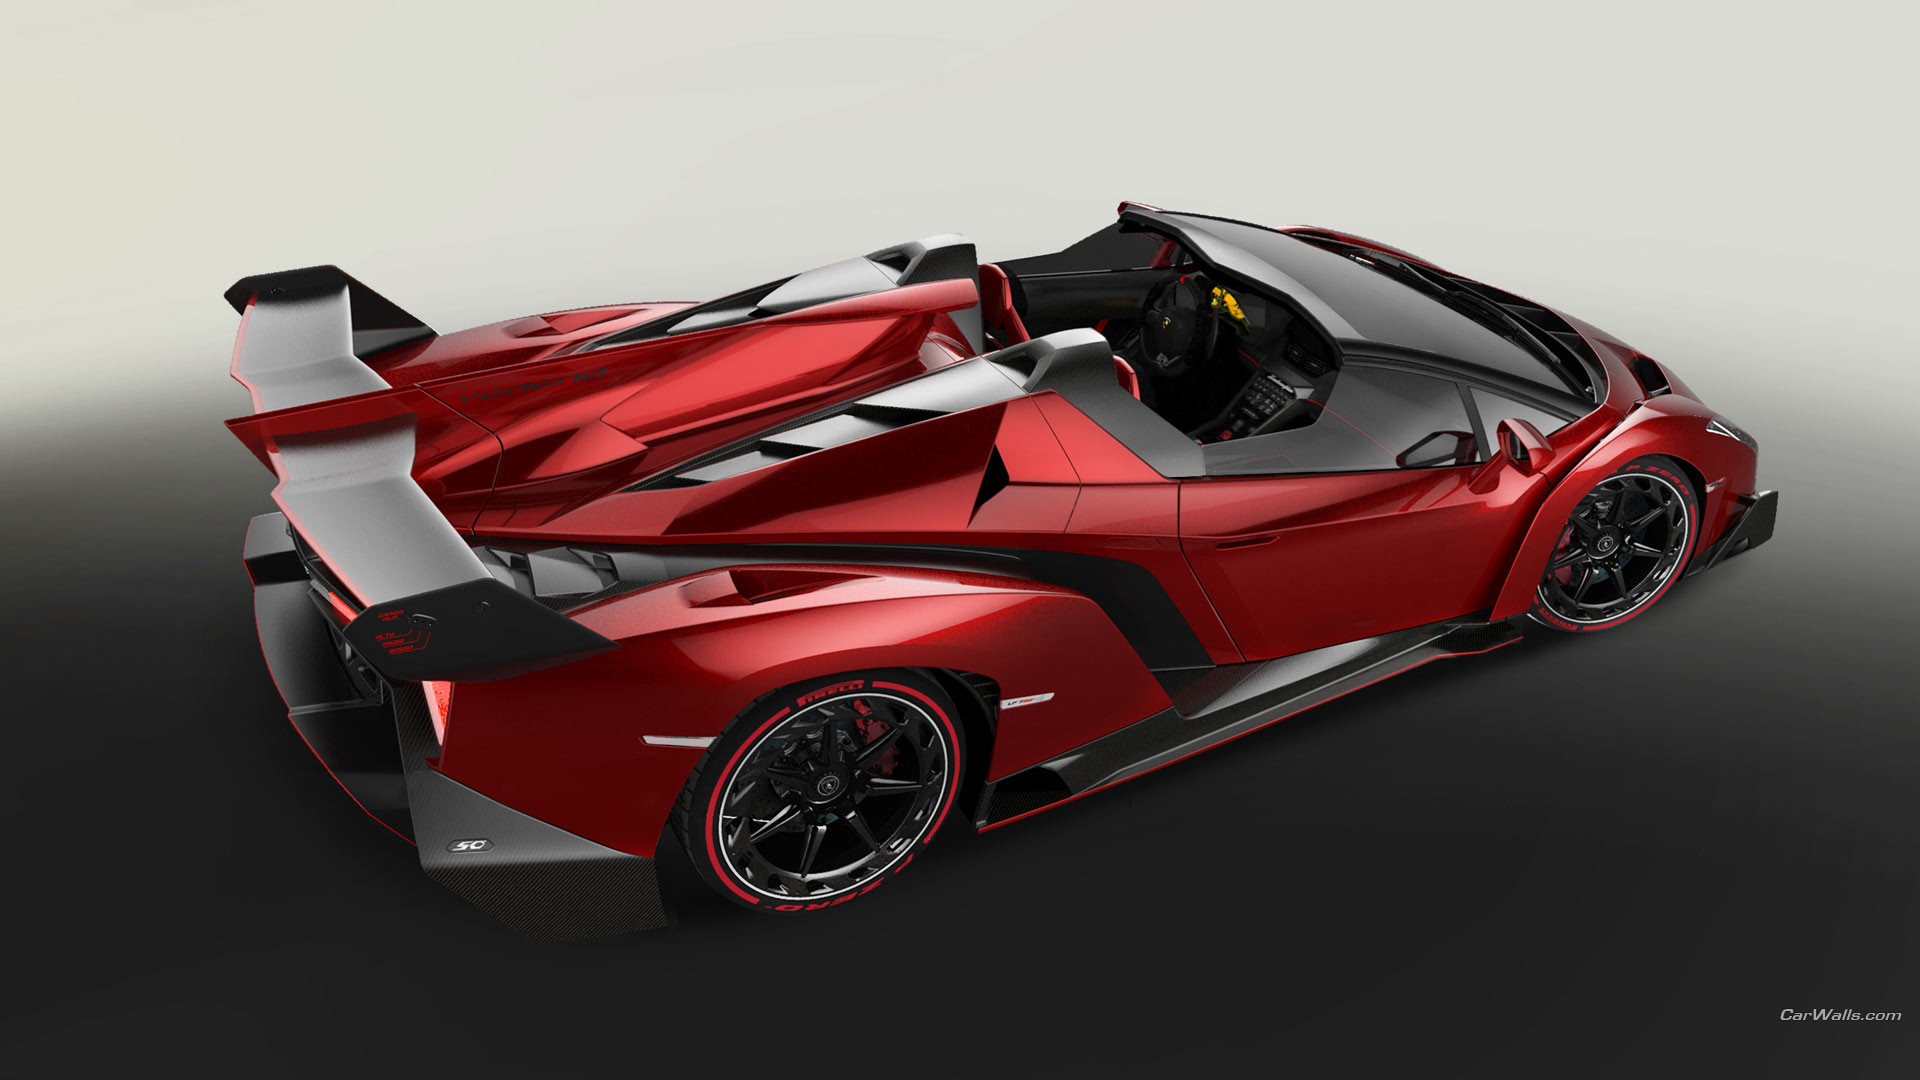 Lamborghini Veneno Roadster Computer Wallpapers, Desktop Backgrounds ...